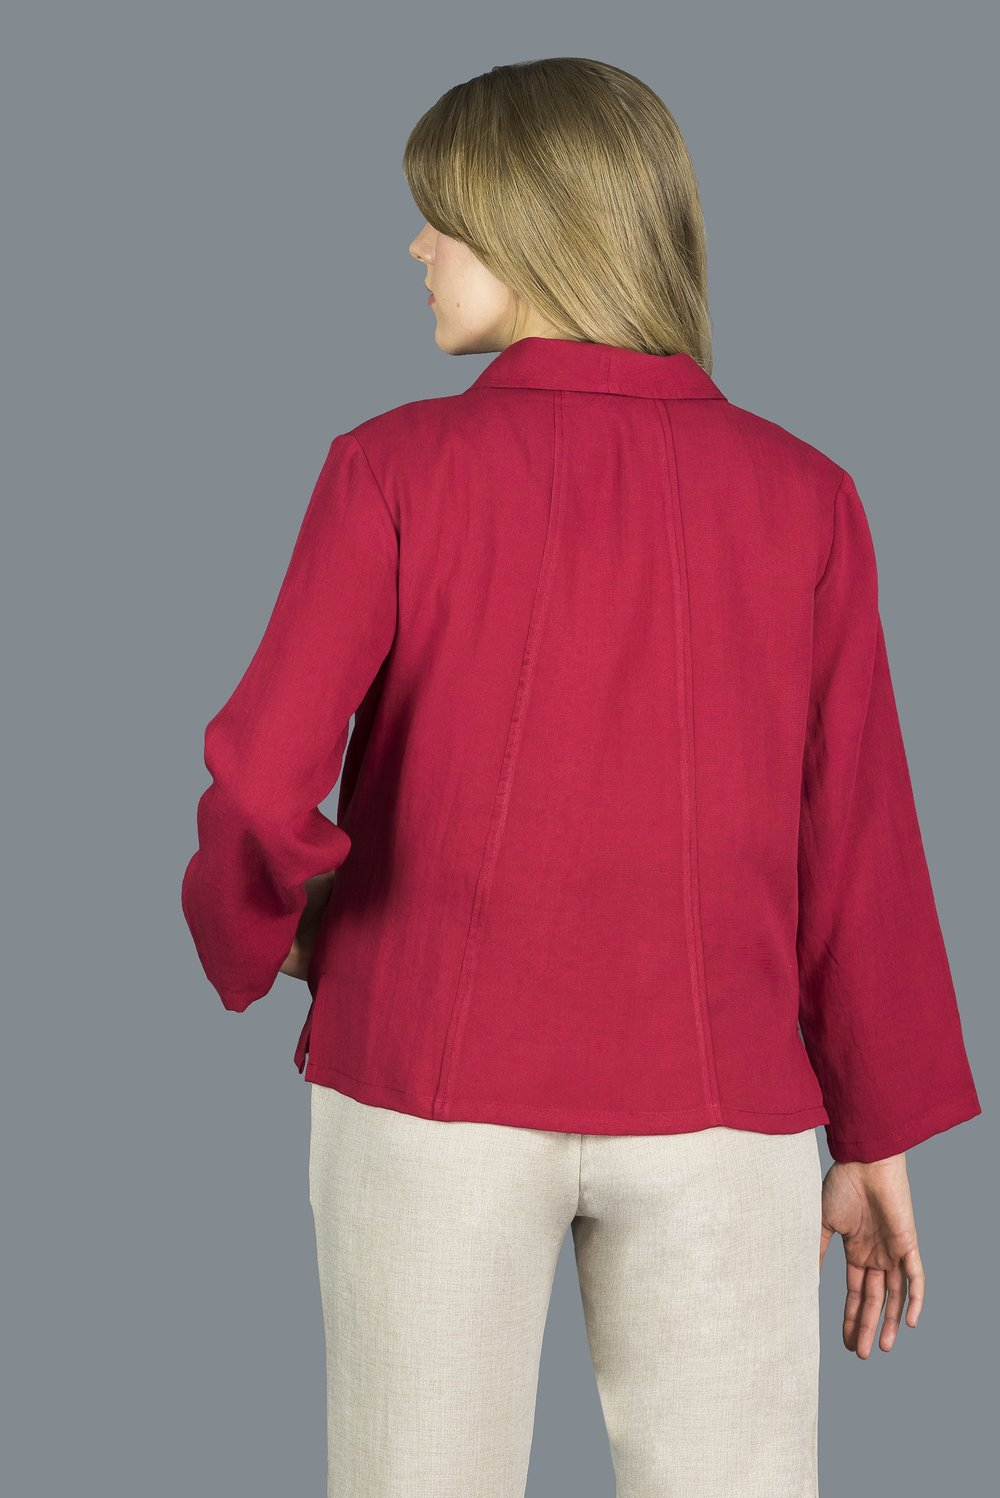 AA214 - Elizabeth Jacket    CL7754 - Ruby